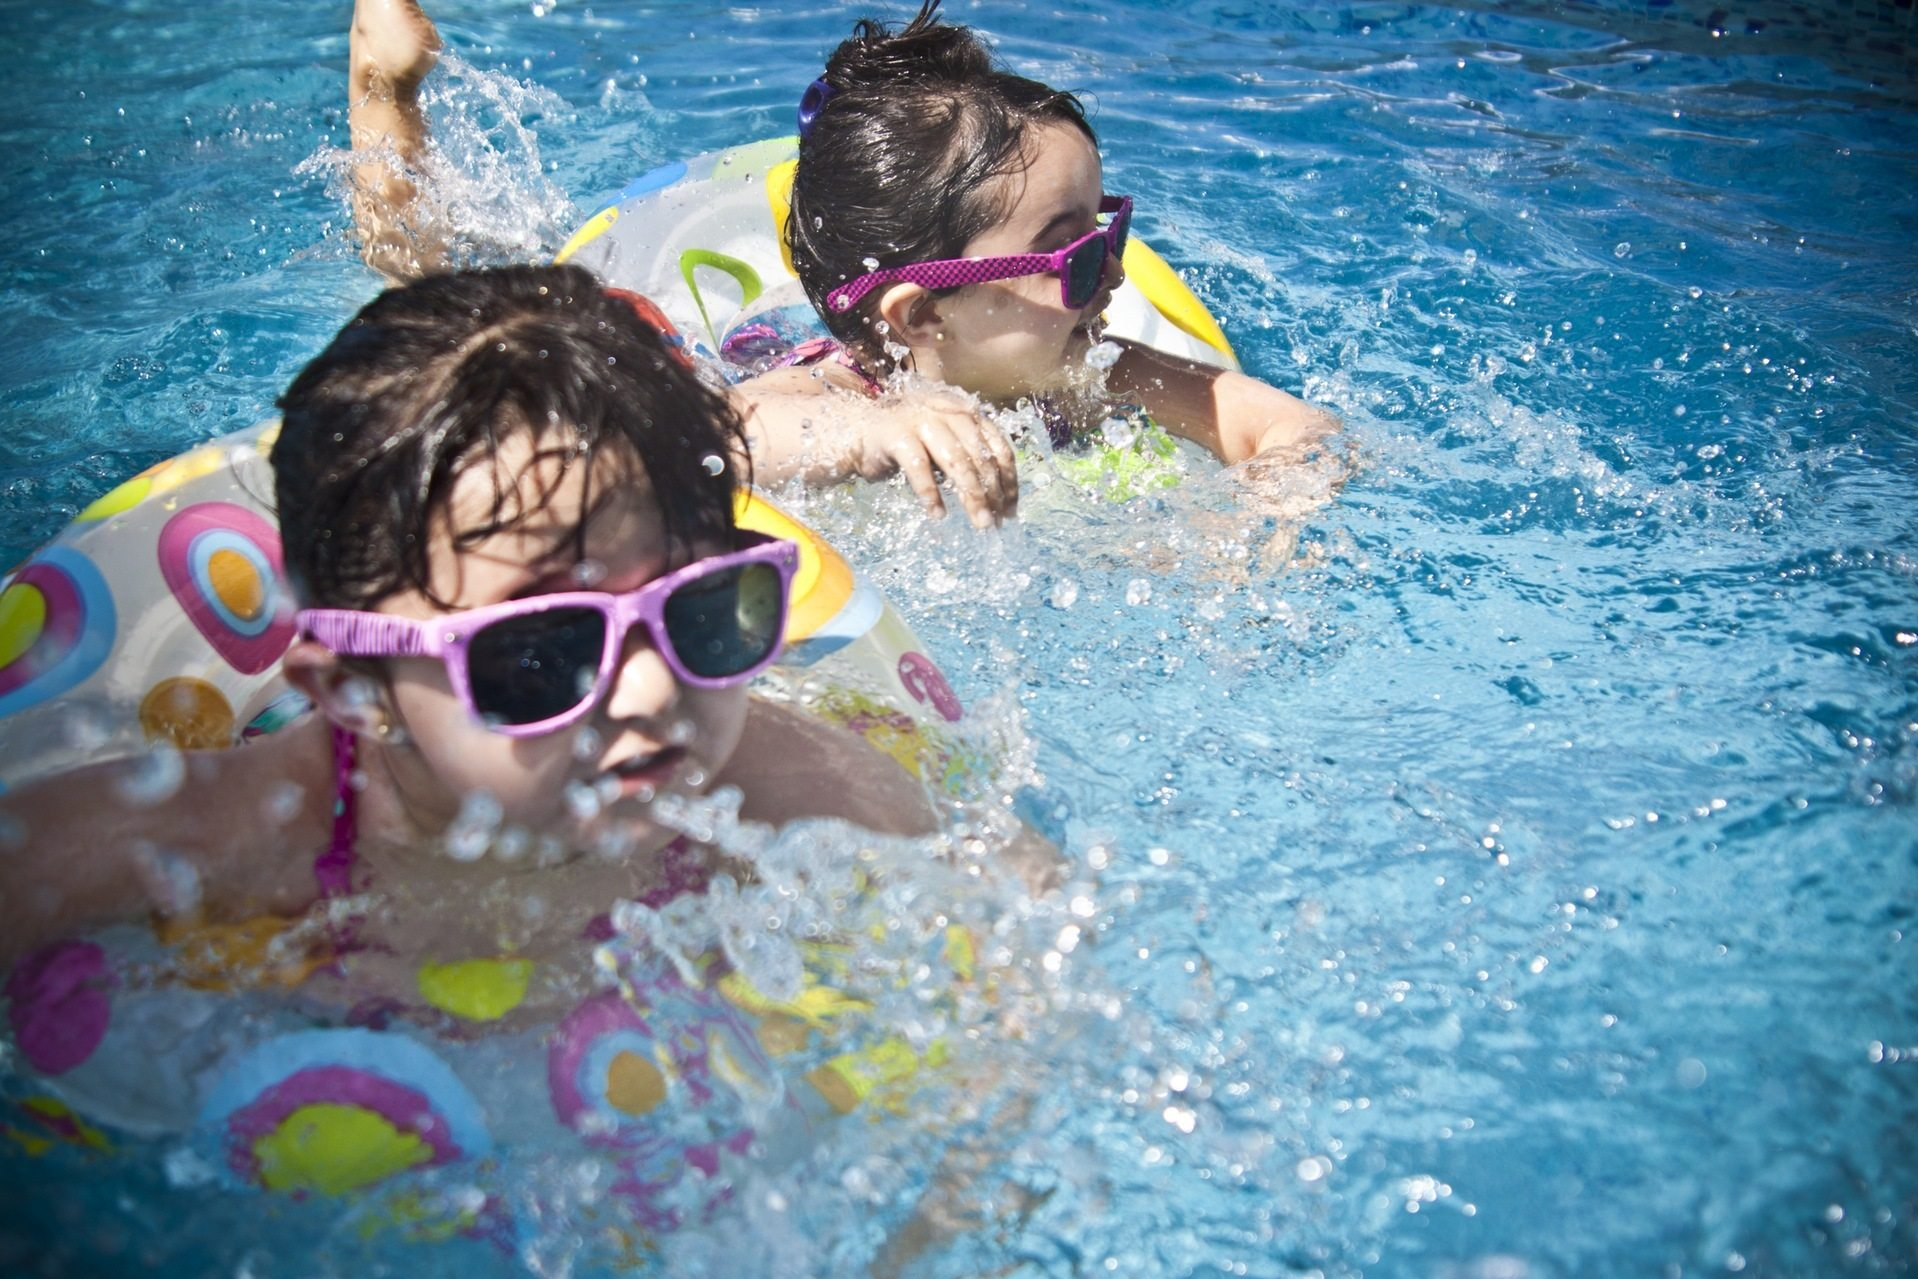 Fluid in the ear can cause ear infections like swimmer's ear